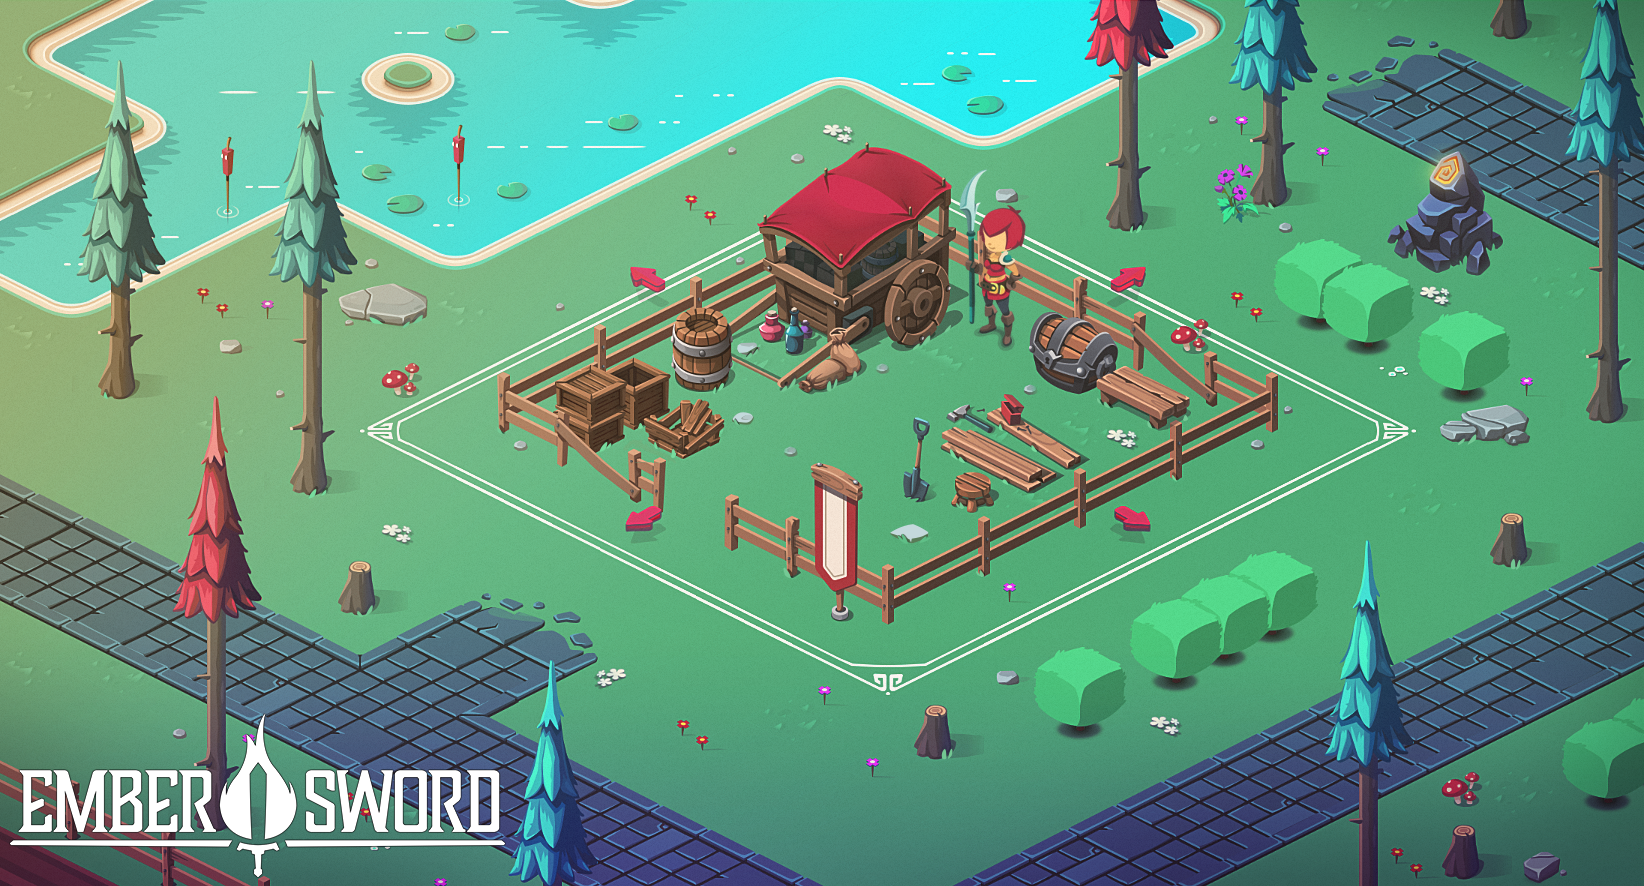 Decentralized Game Design Will Change MMORPGs Forever - Game design